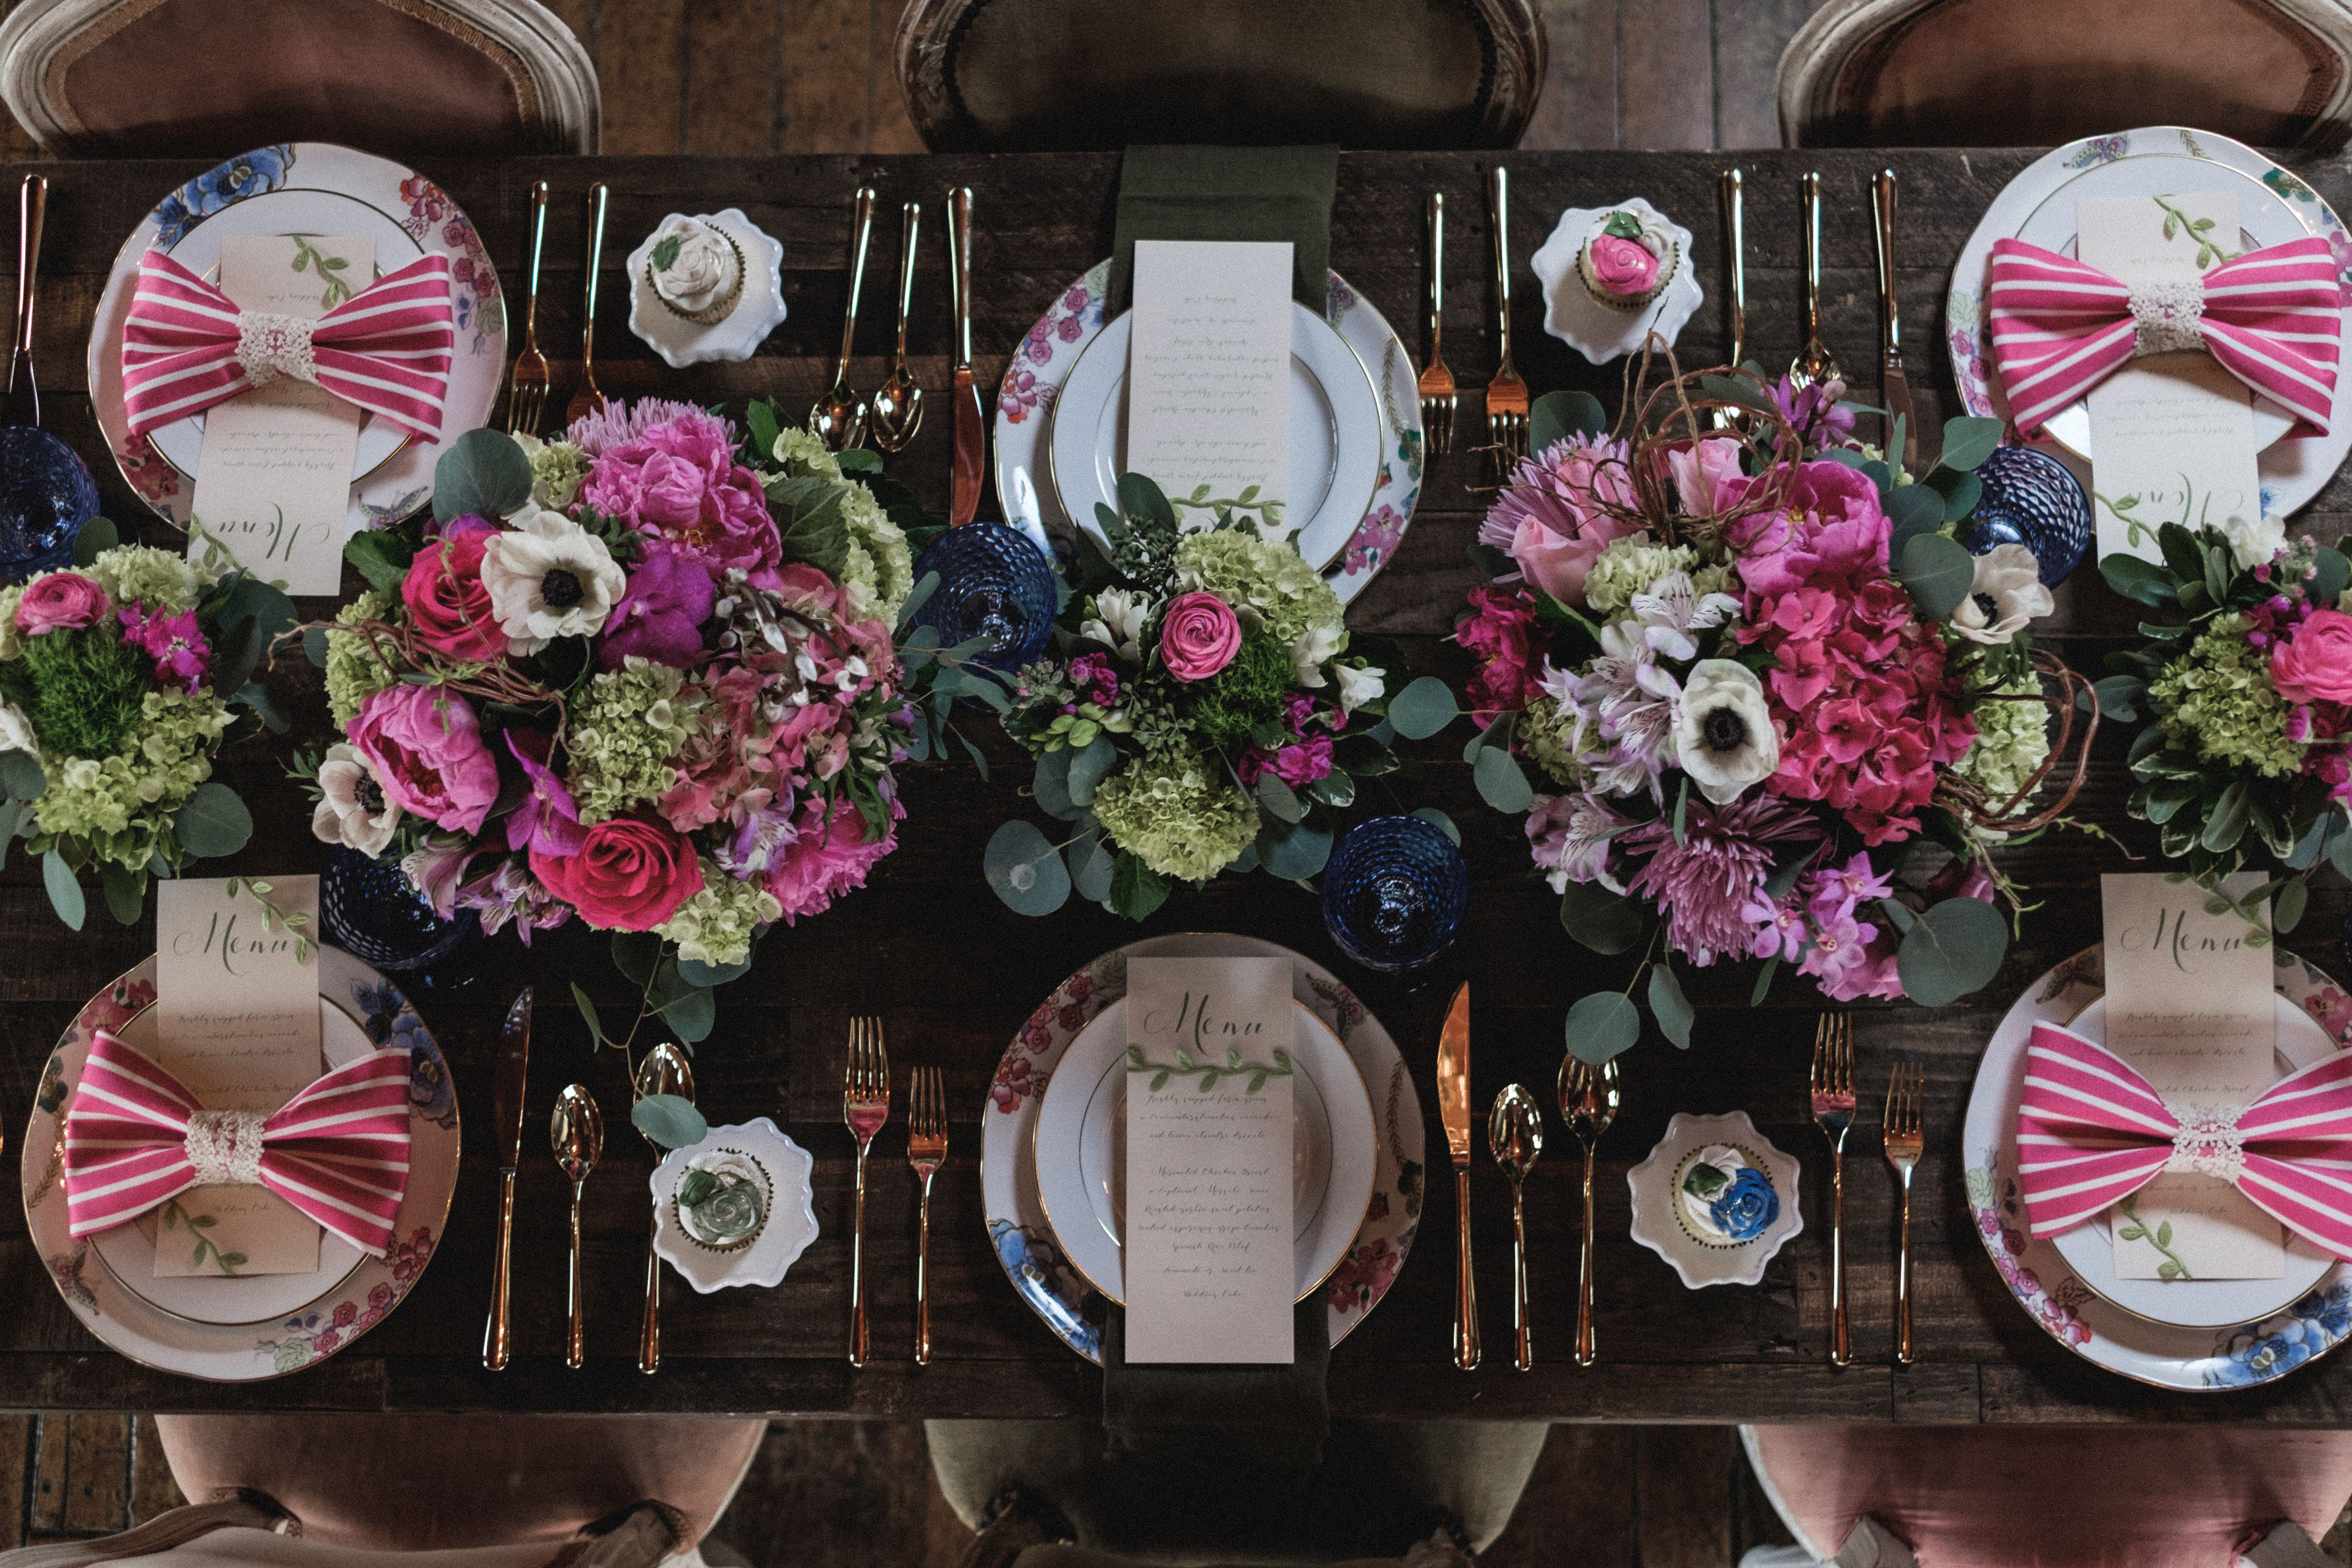 Timeless elegance can set your wooden table with soft